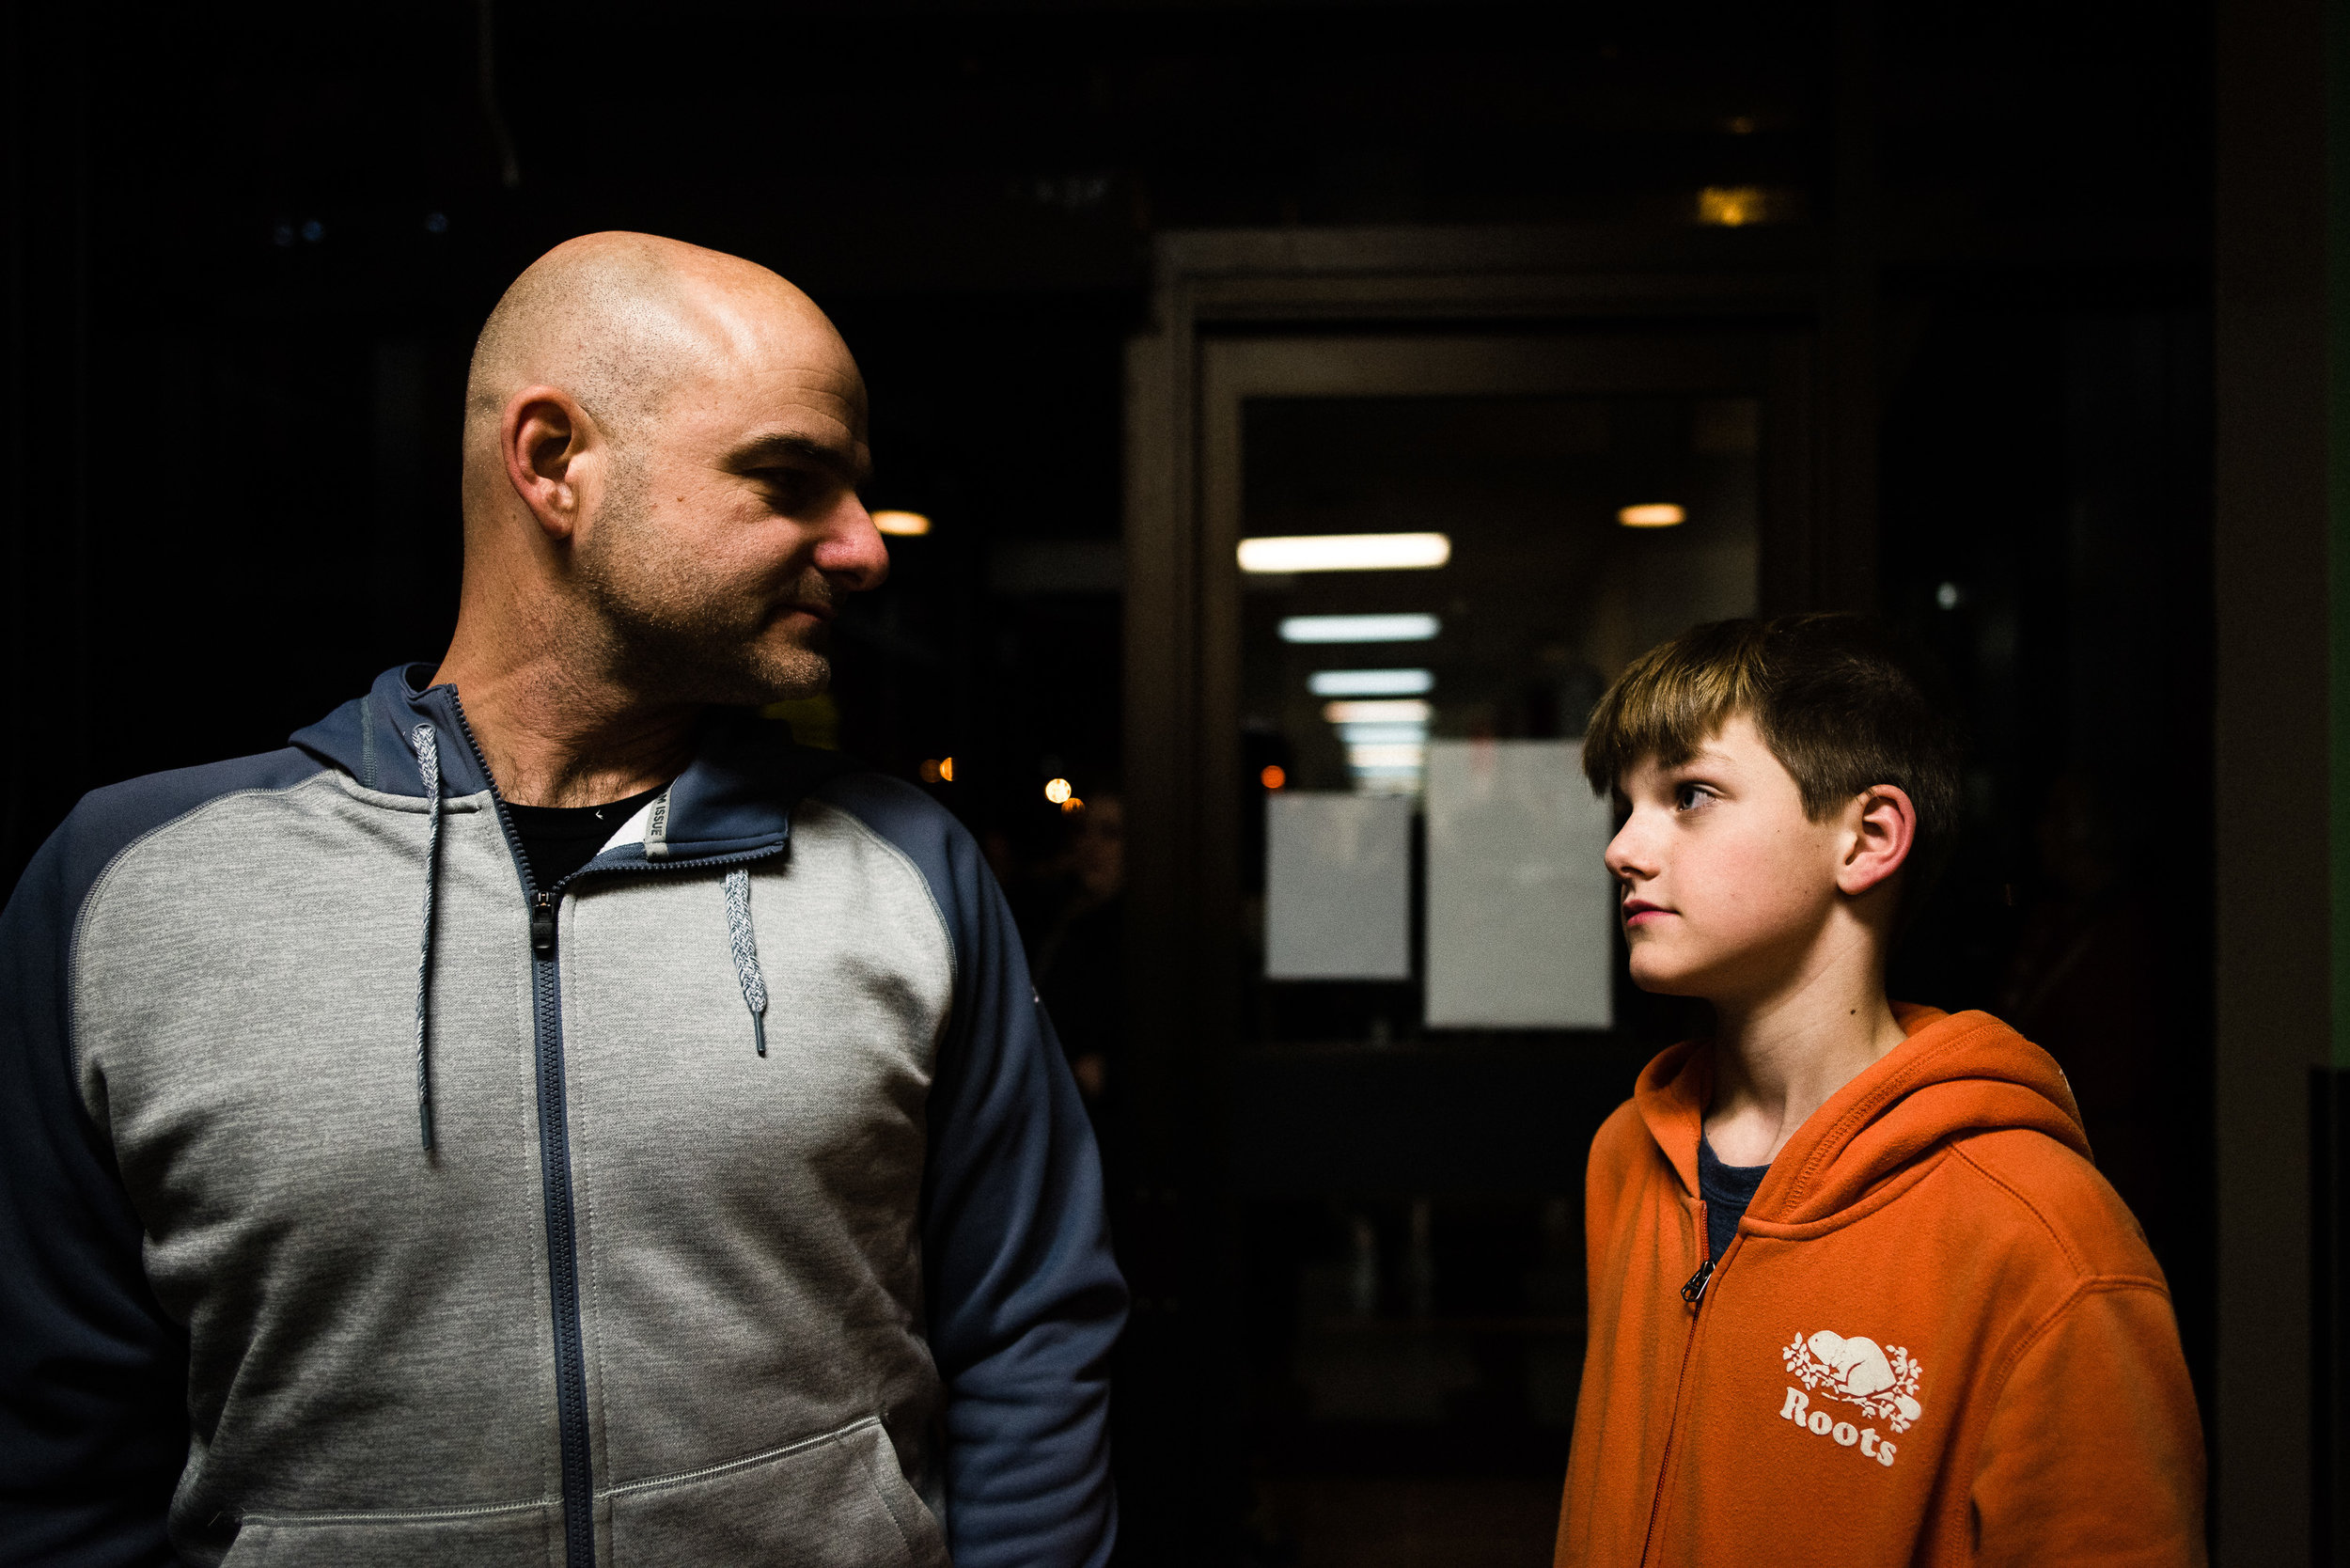 father and son look at each other under indoor lights